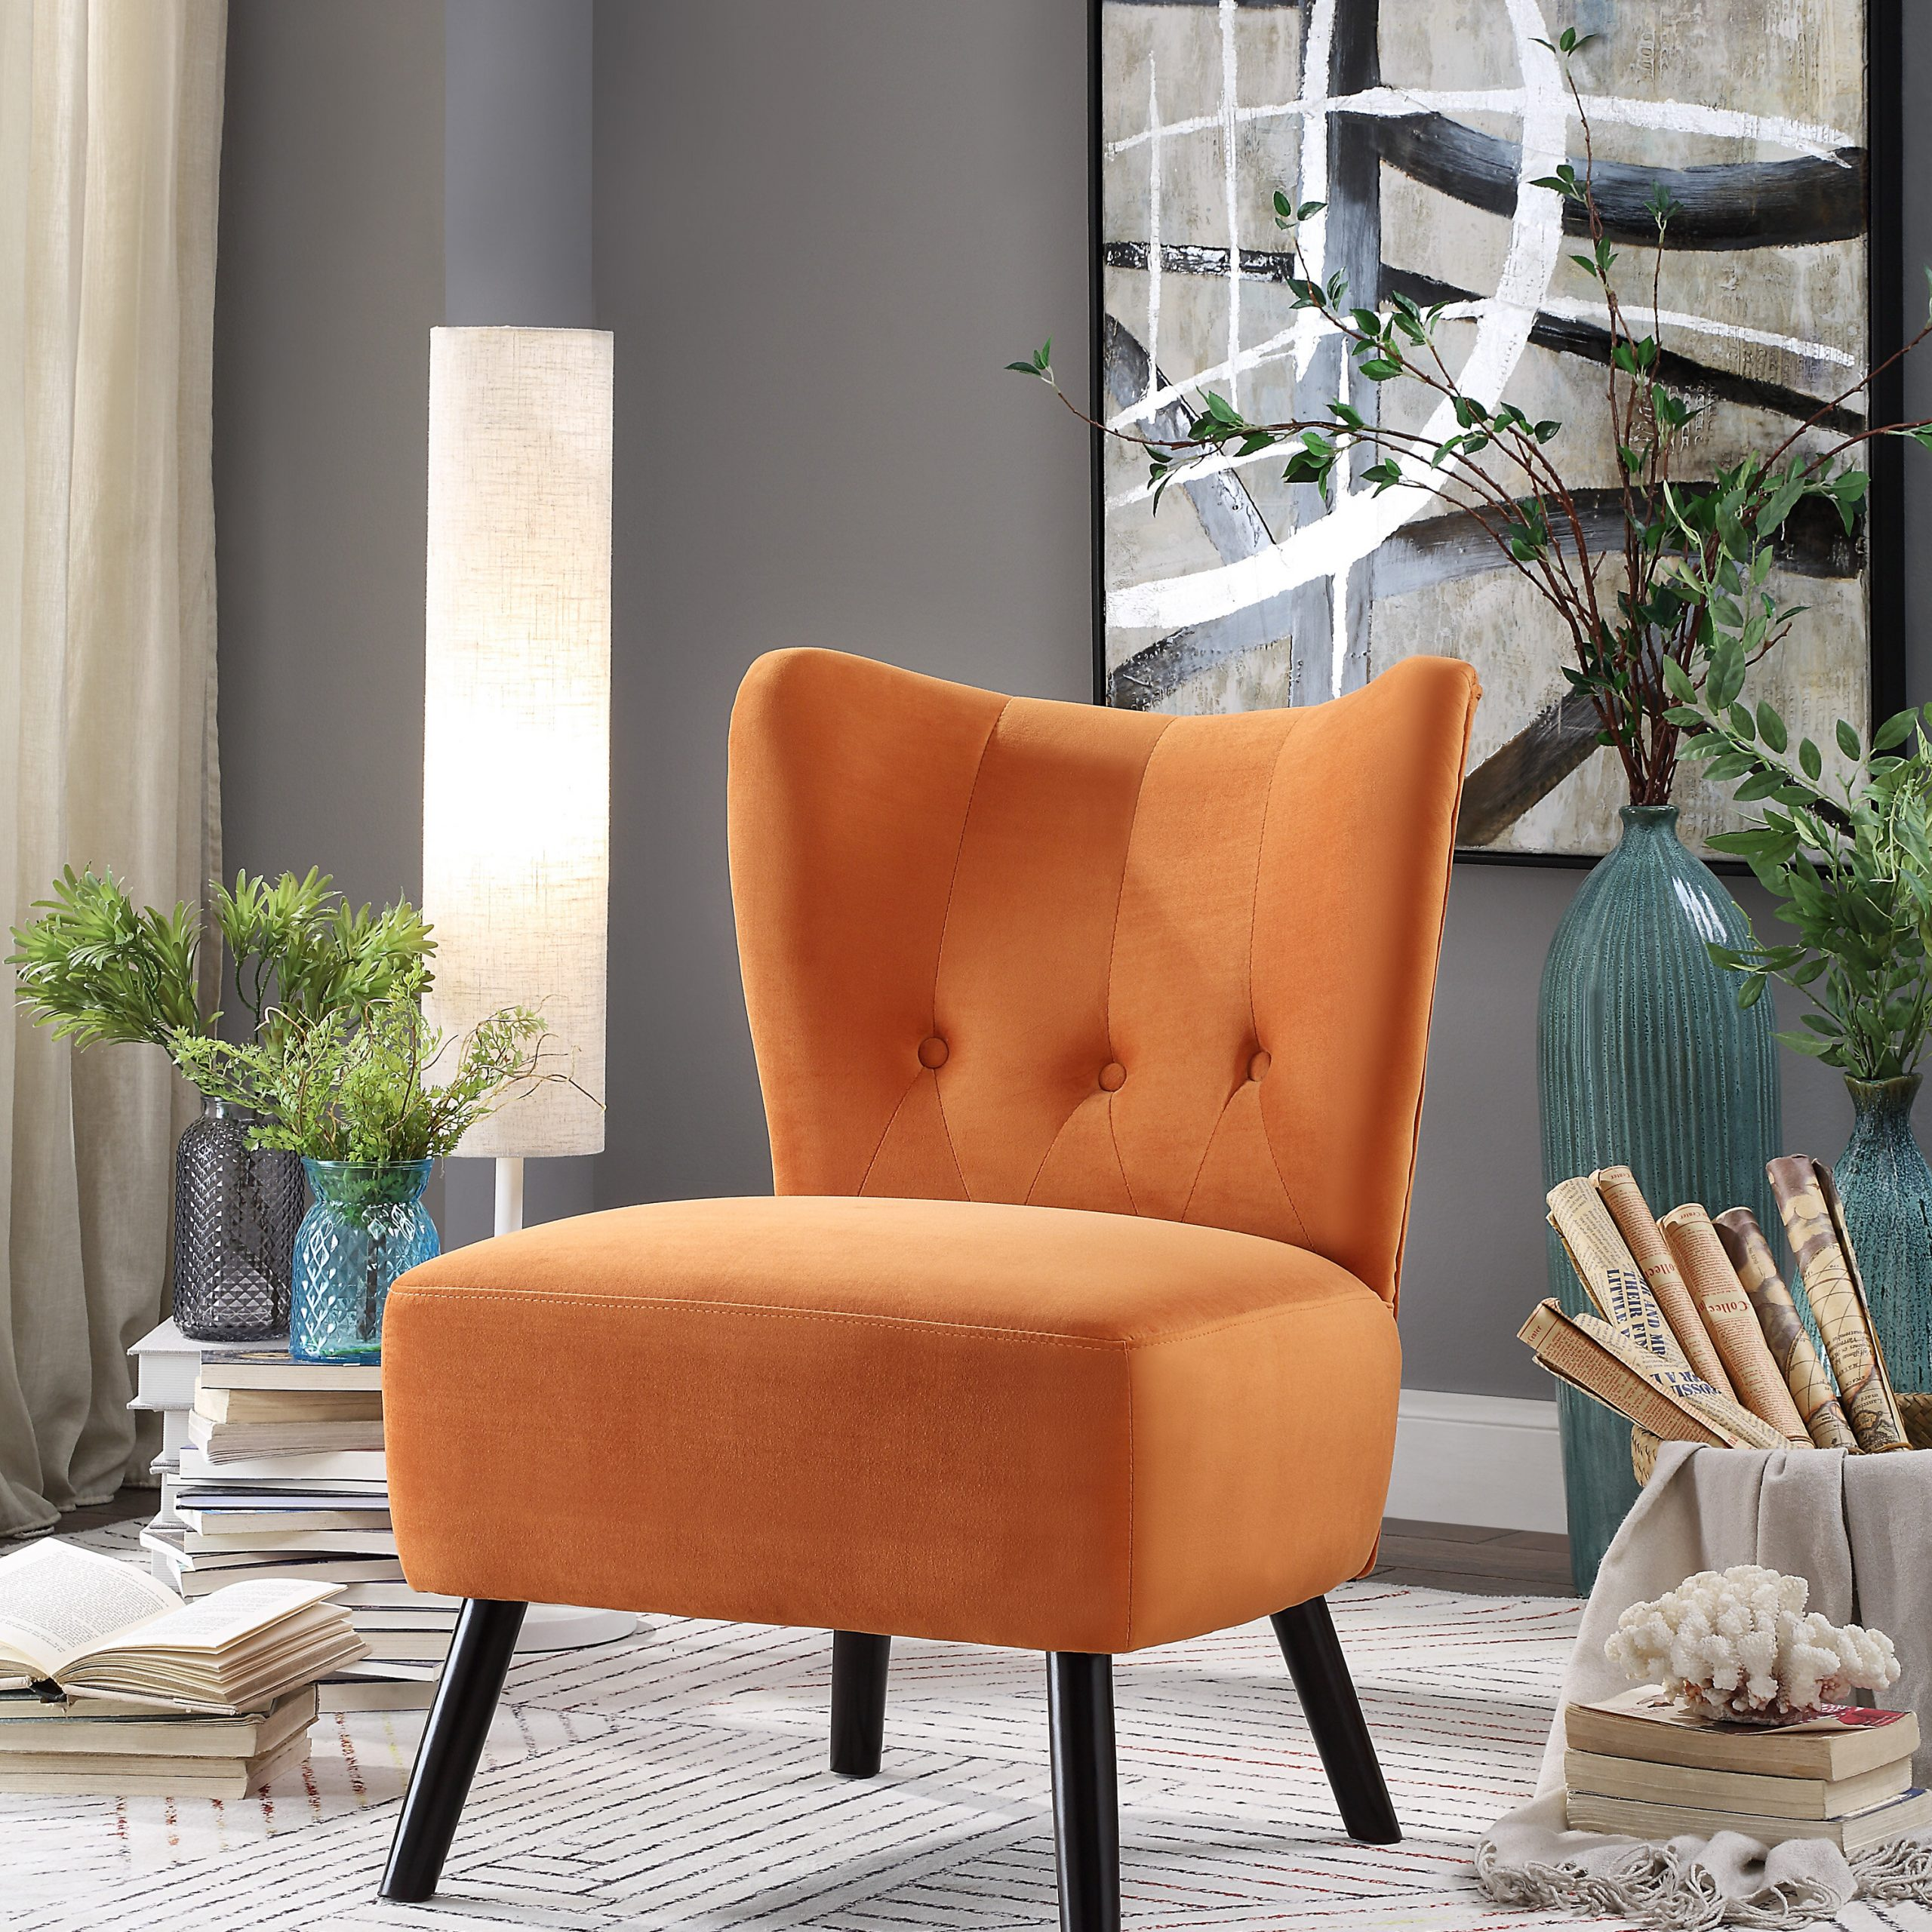 Brown Orange Accent Chairs You'Ll Love In 2021 | Wayfair Intended For Artressia Barrel Chairs (View 9 of 15)